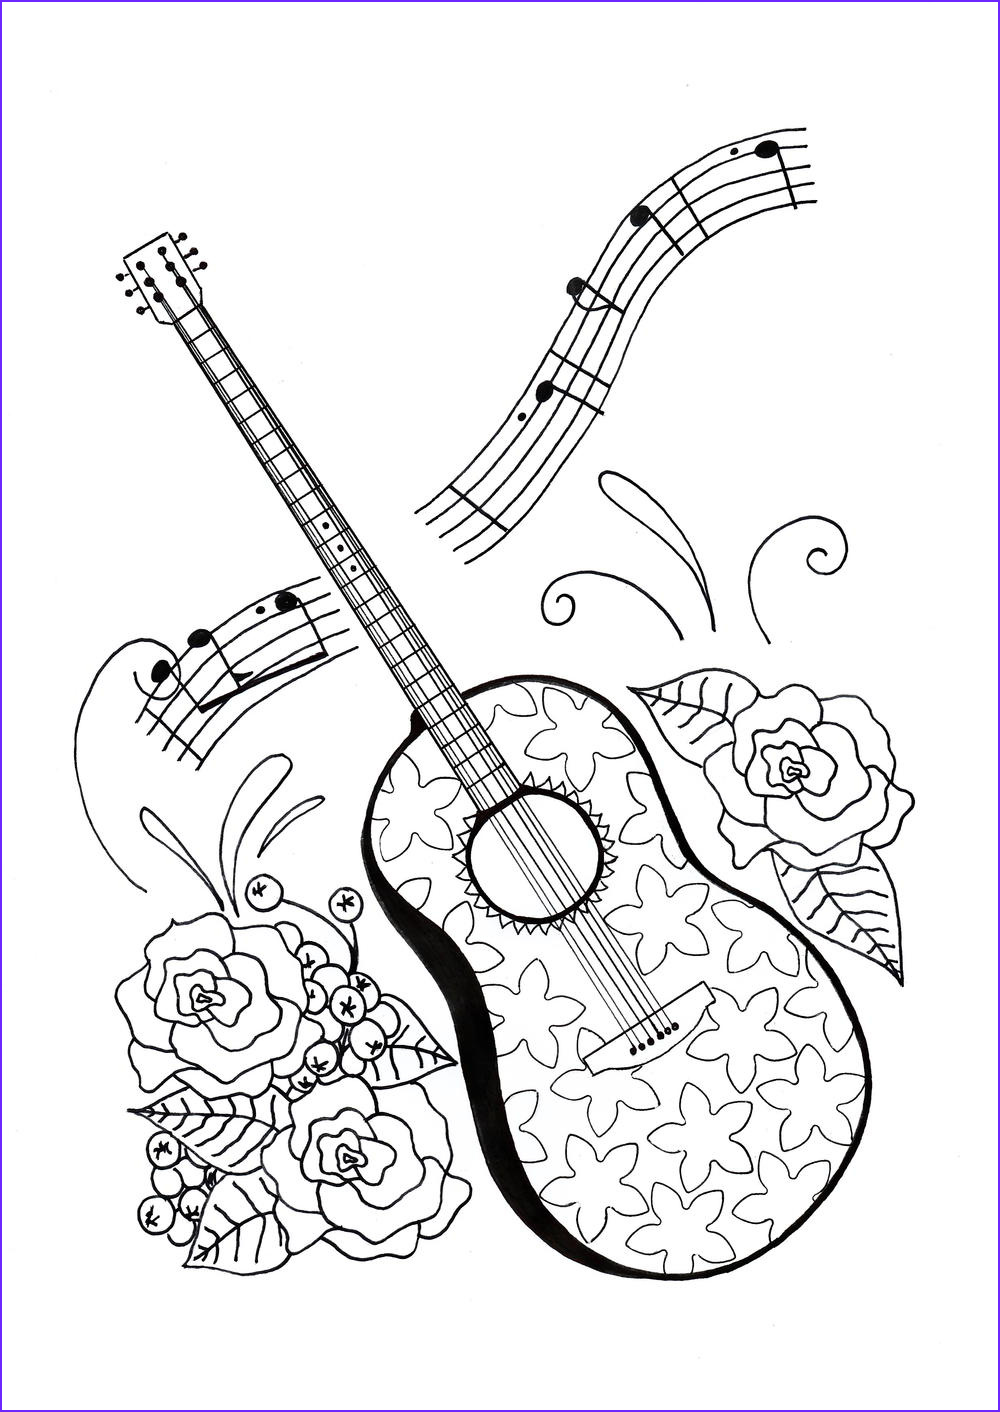 For the Love of Music Adult Coloring Page